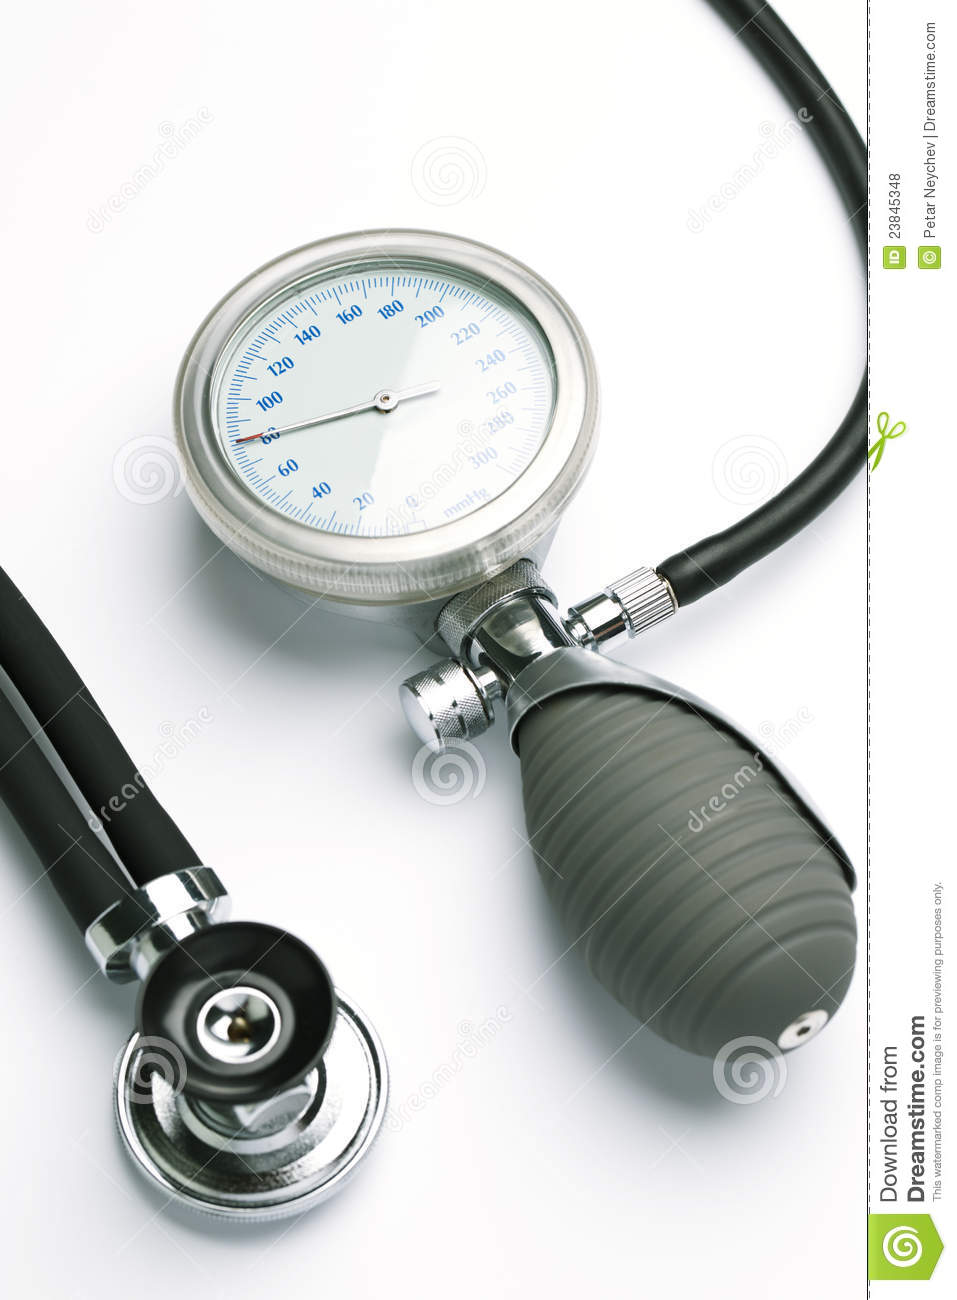 how to read high blood pressure meter